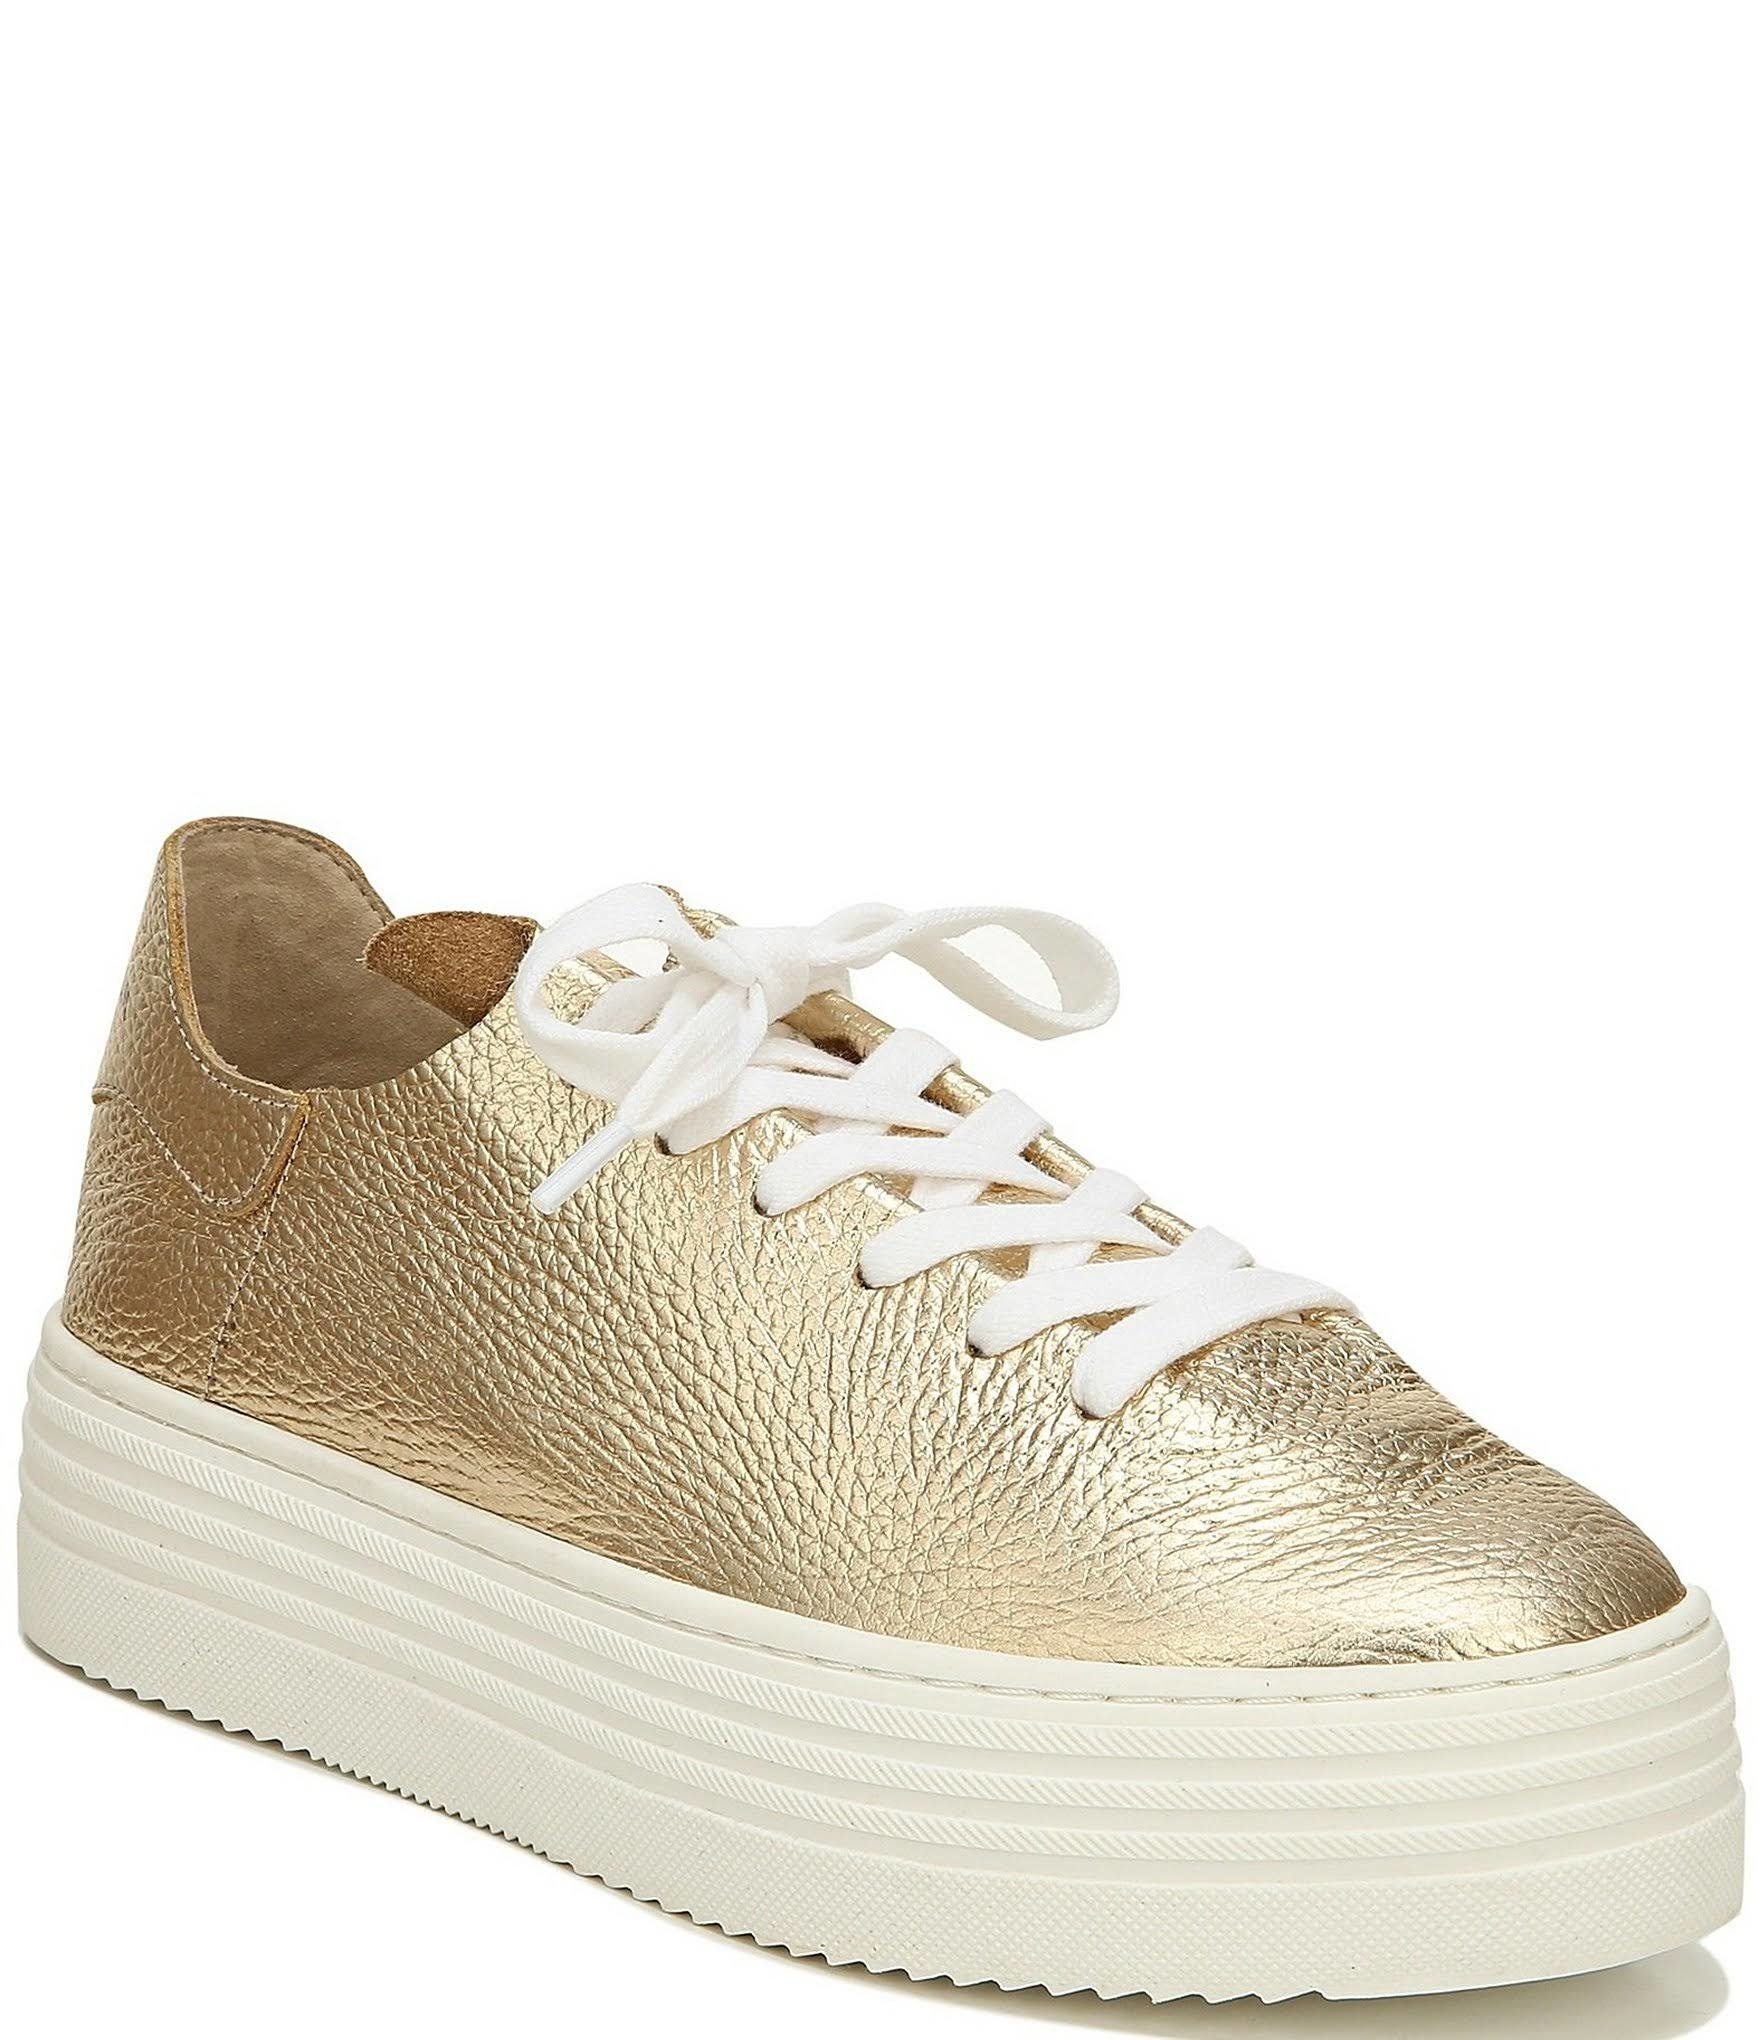 Pippy Tumbled Gold Sneaker - The Shoe Attic